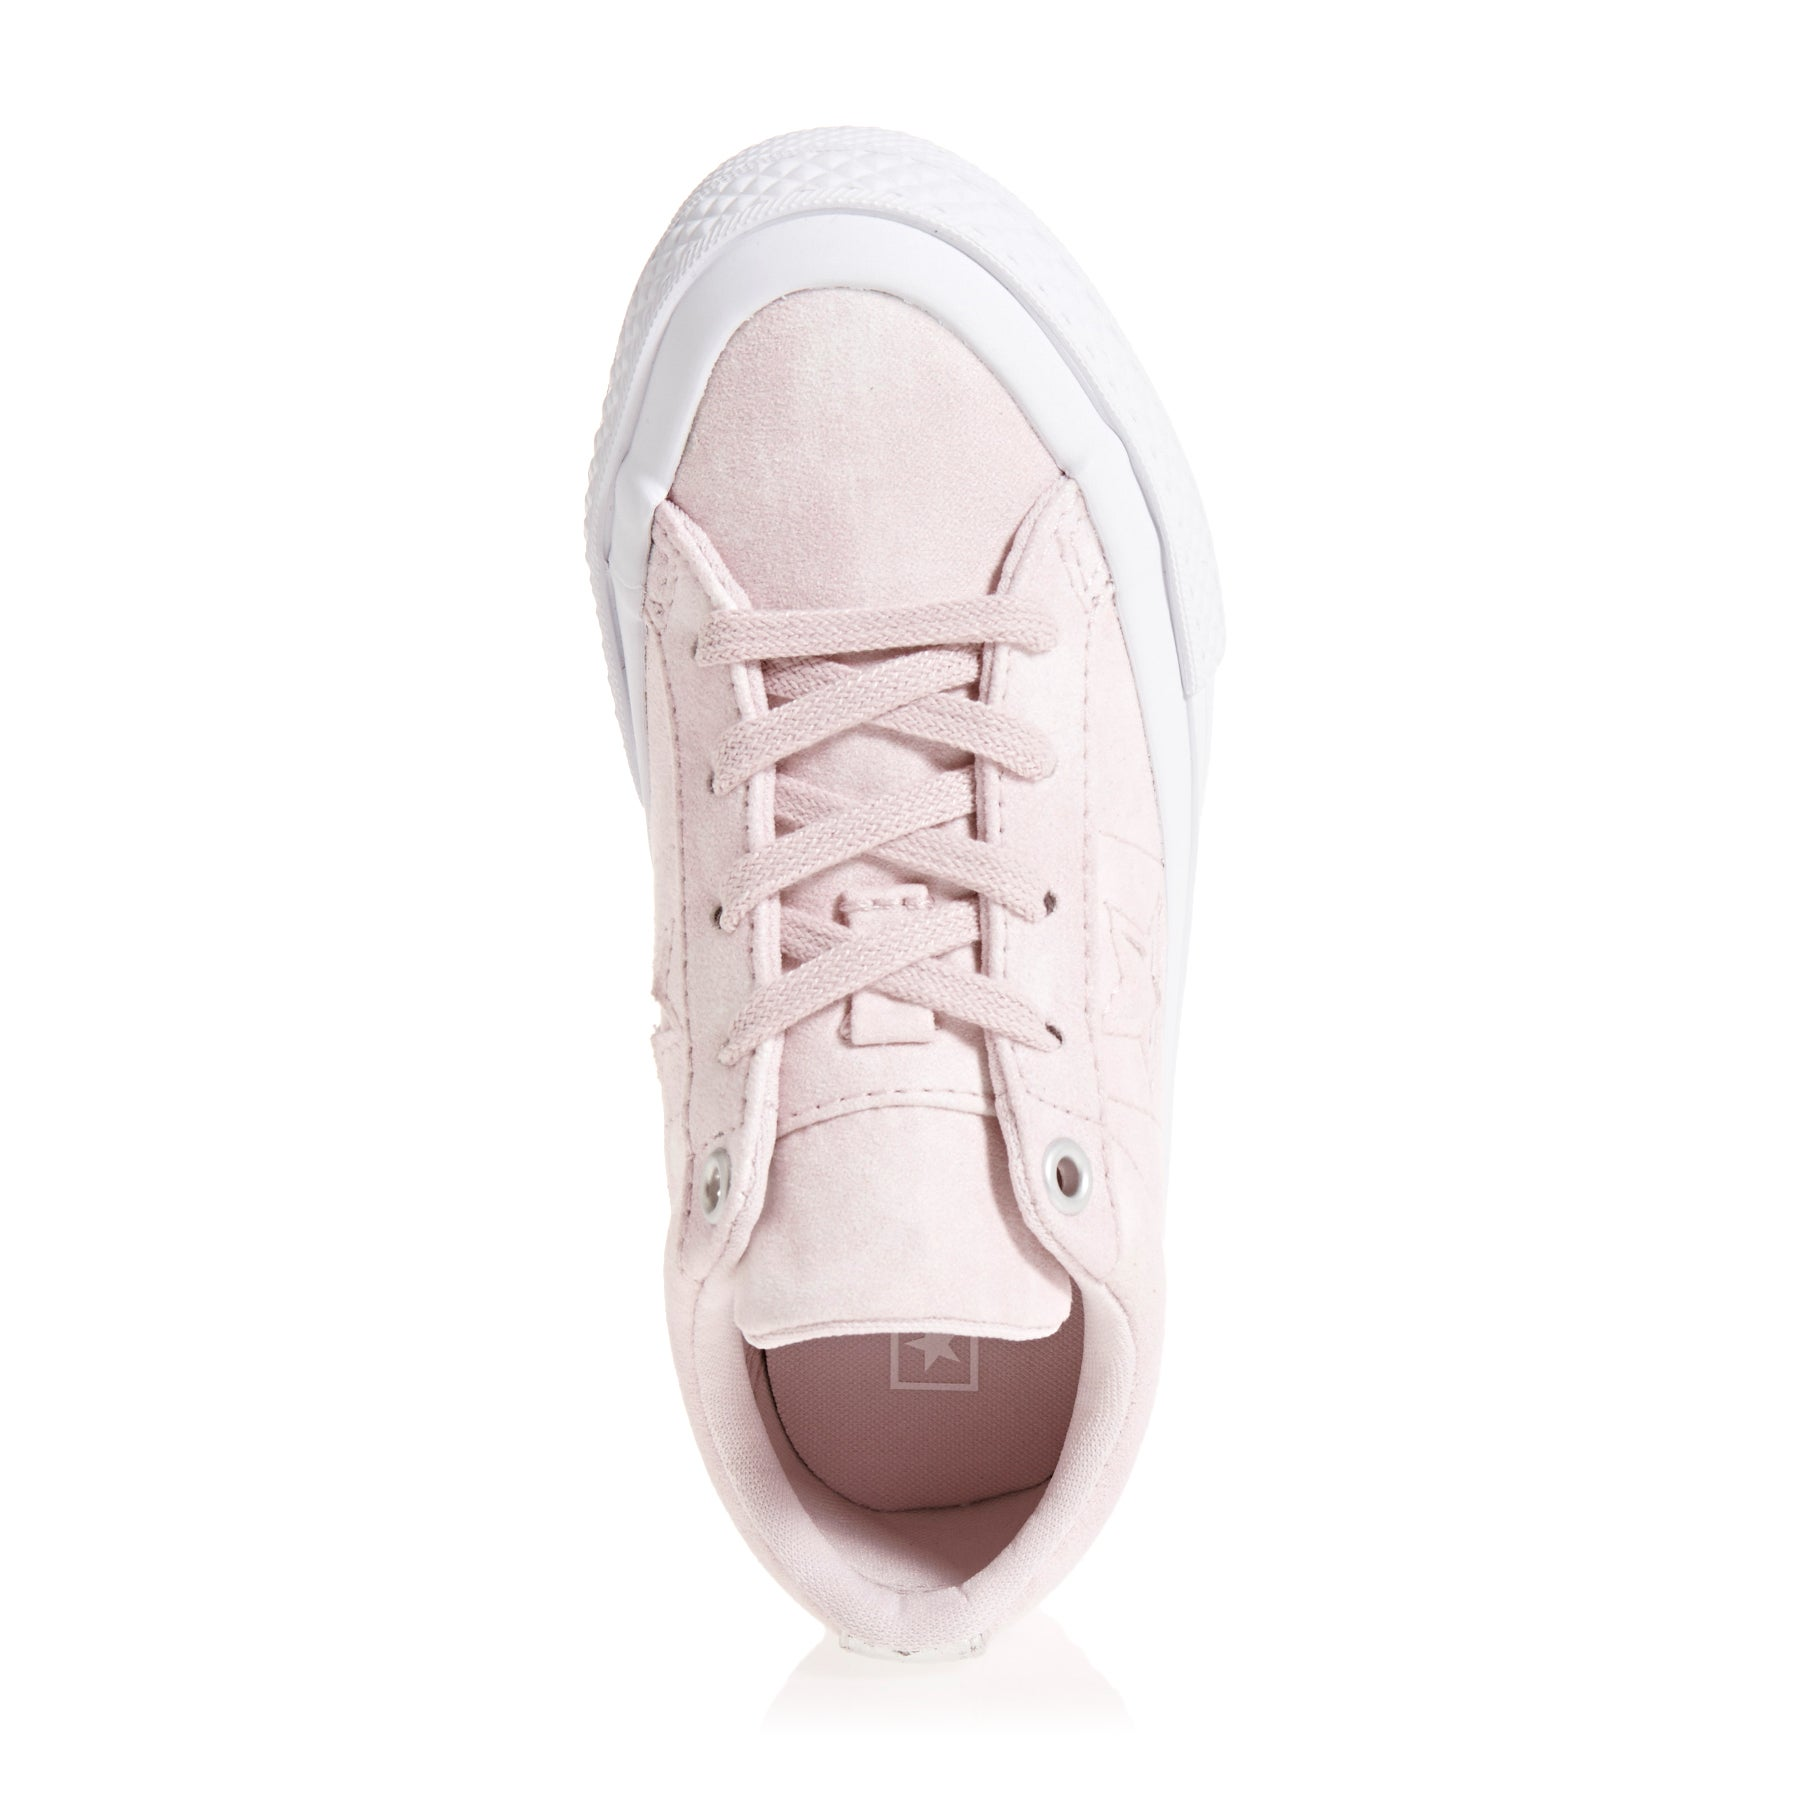 Converse One Star Kids Shoes from Magicseaweed